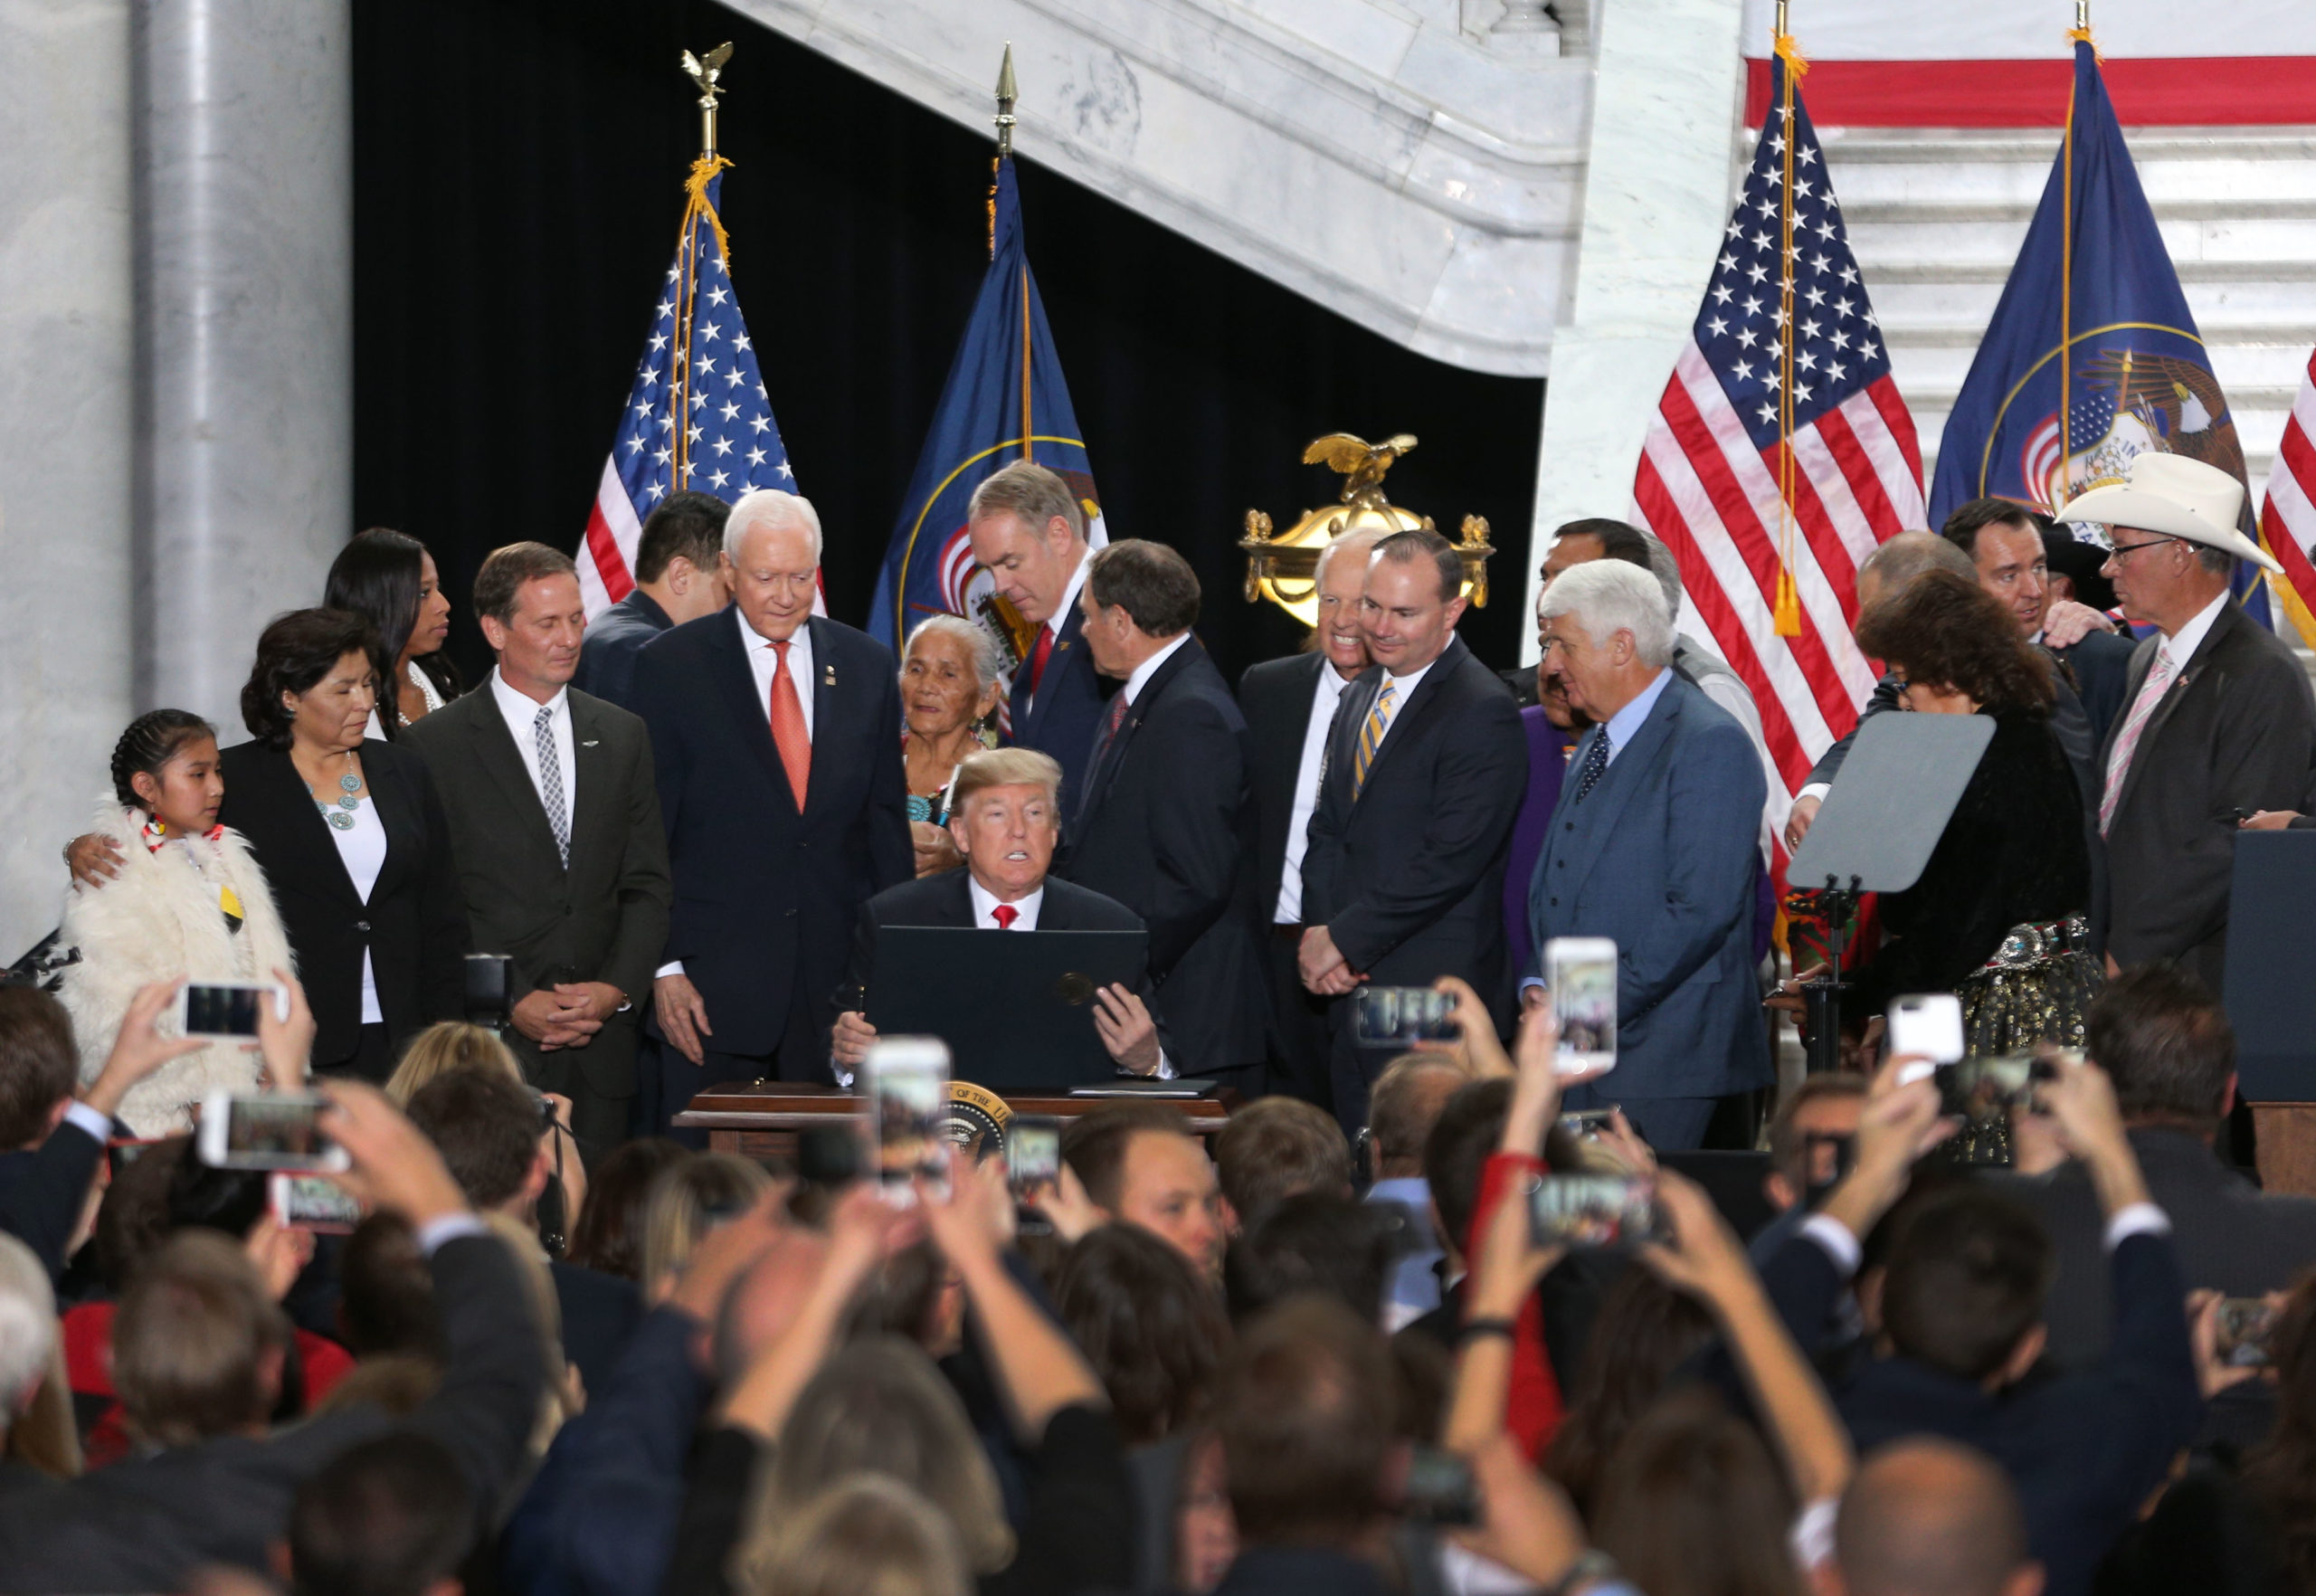 With Utah officials surrounding him, President Donald Trump reads an executive order he signed reducing monuments on Dec. 4, 2017 in Salt Lake City, Utah. (George Frey/Getty Images)